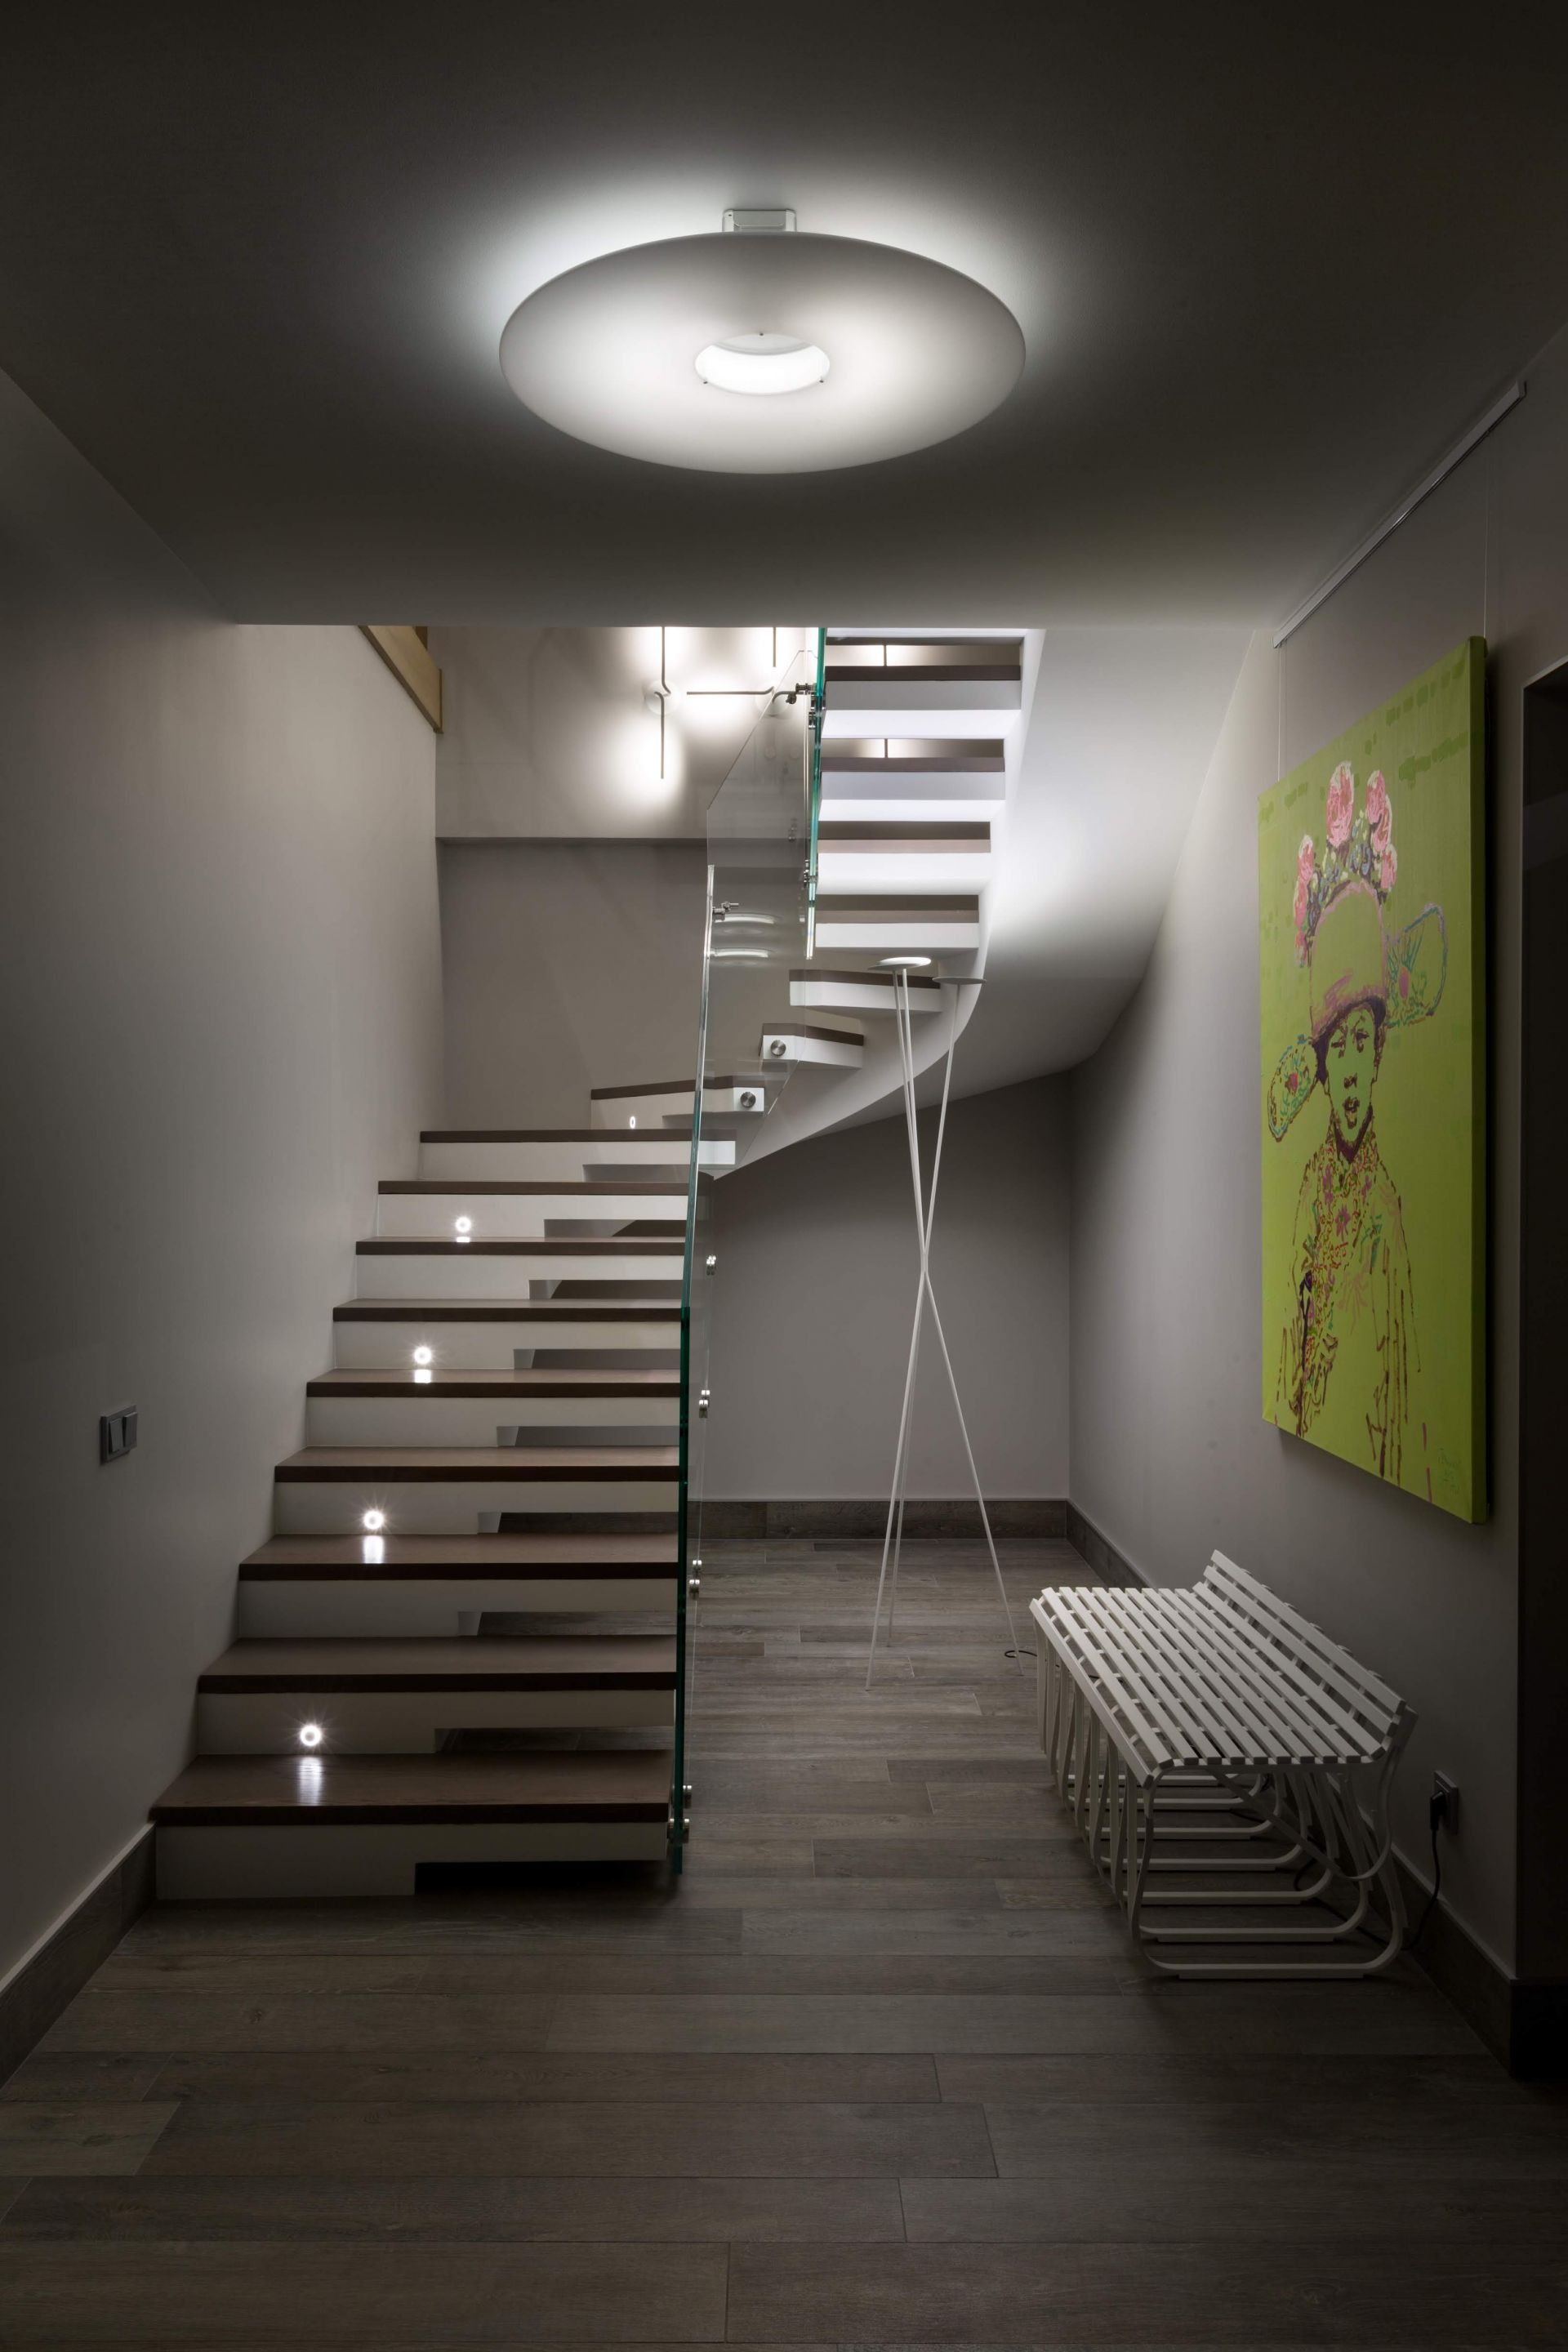 Staircase with glass railing